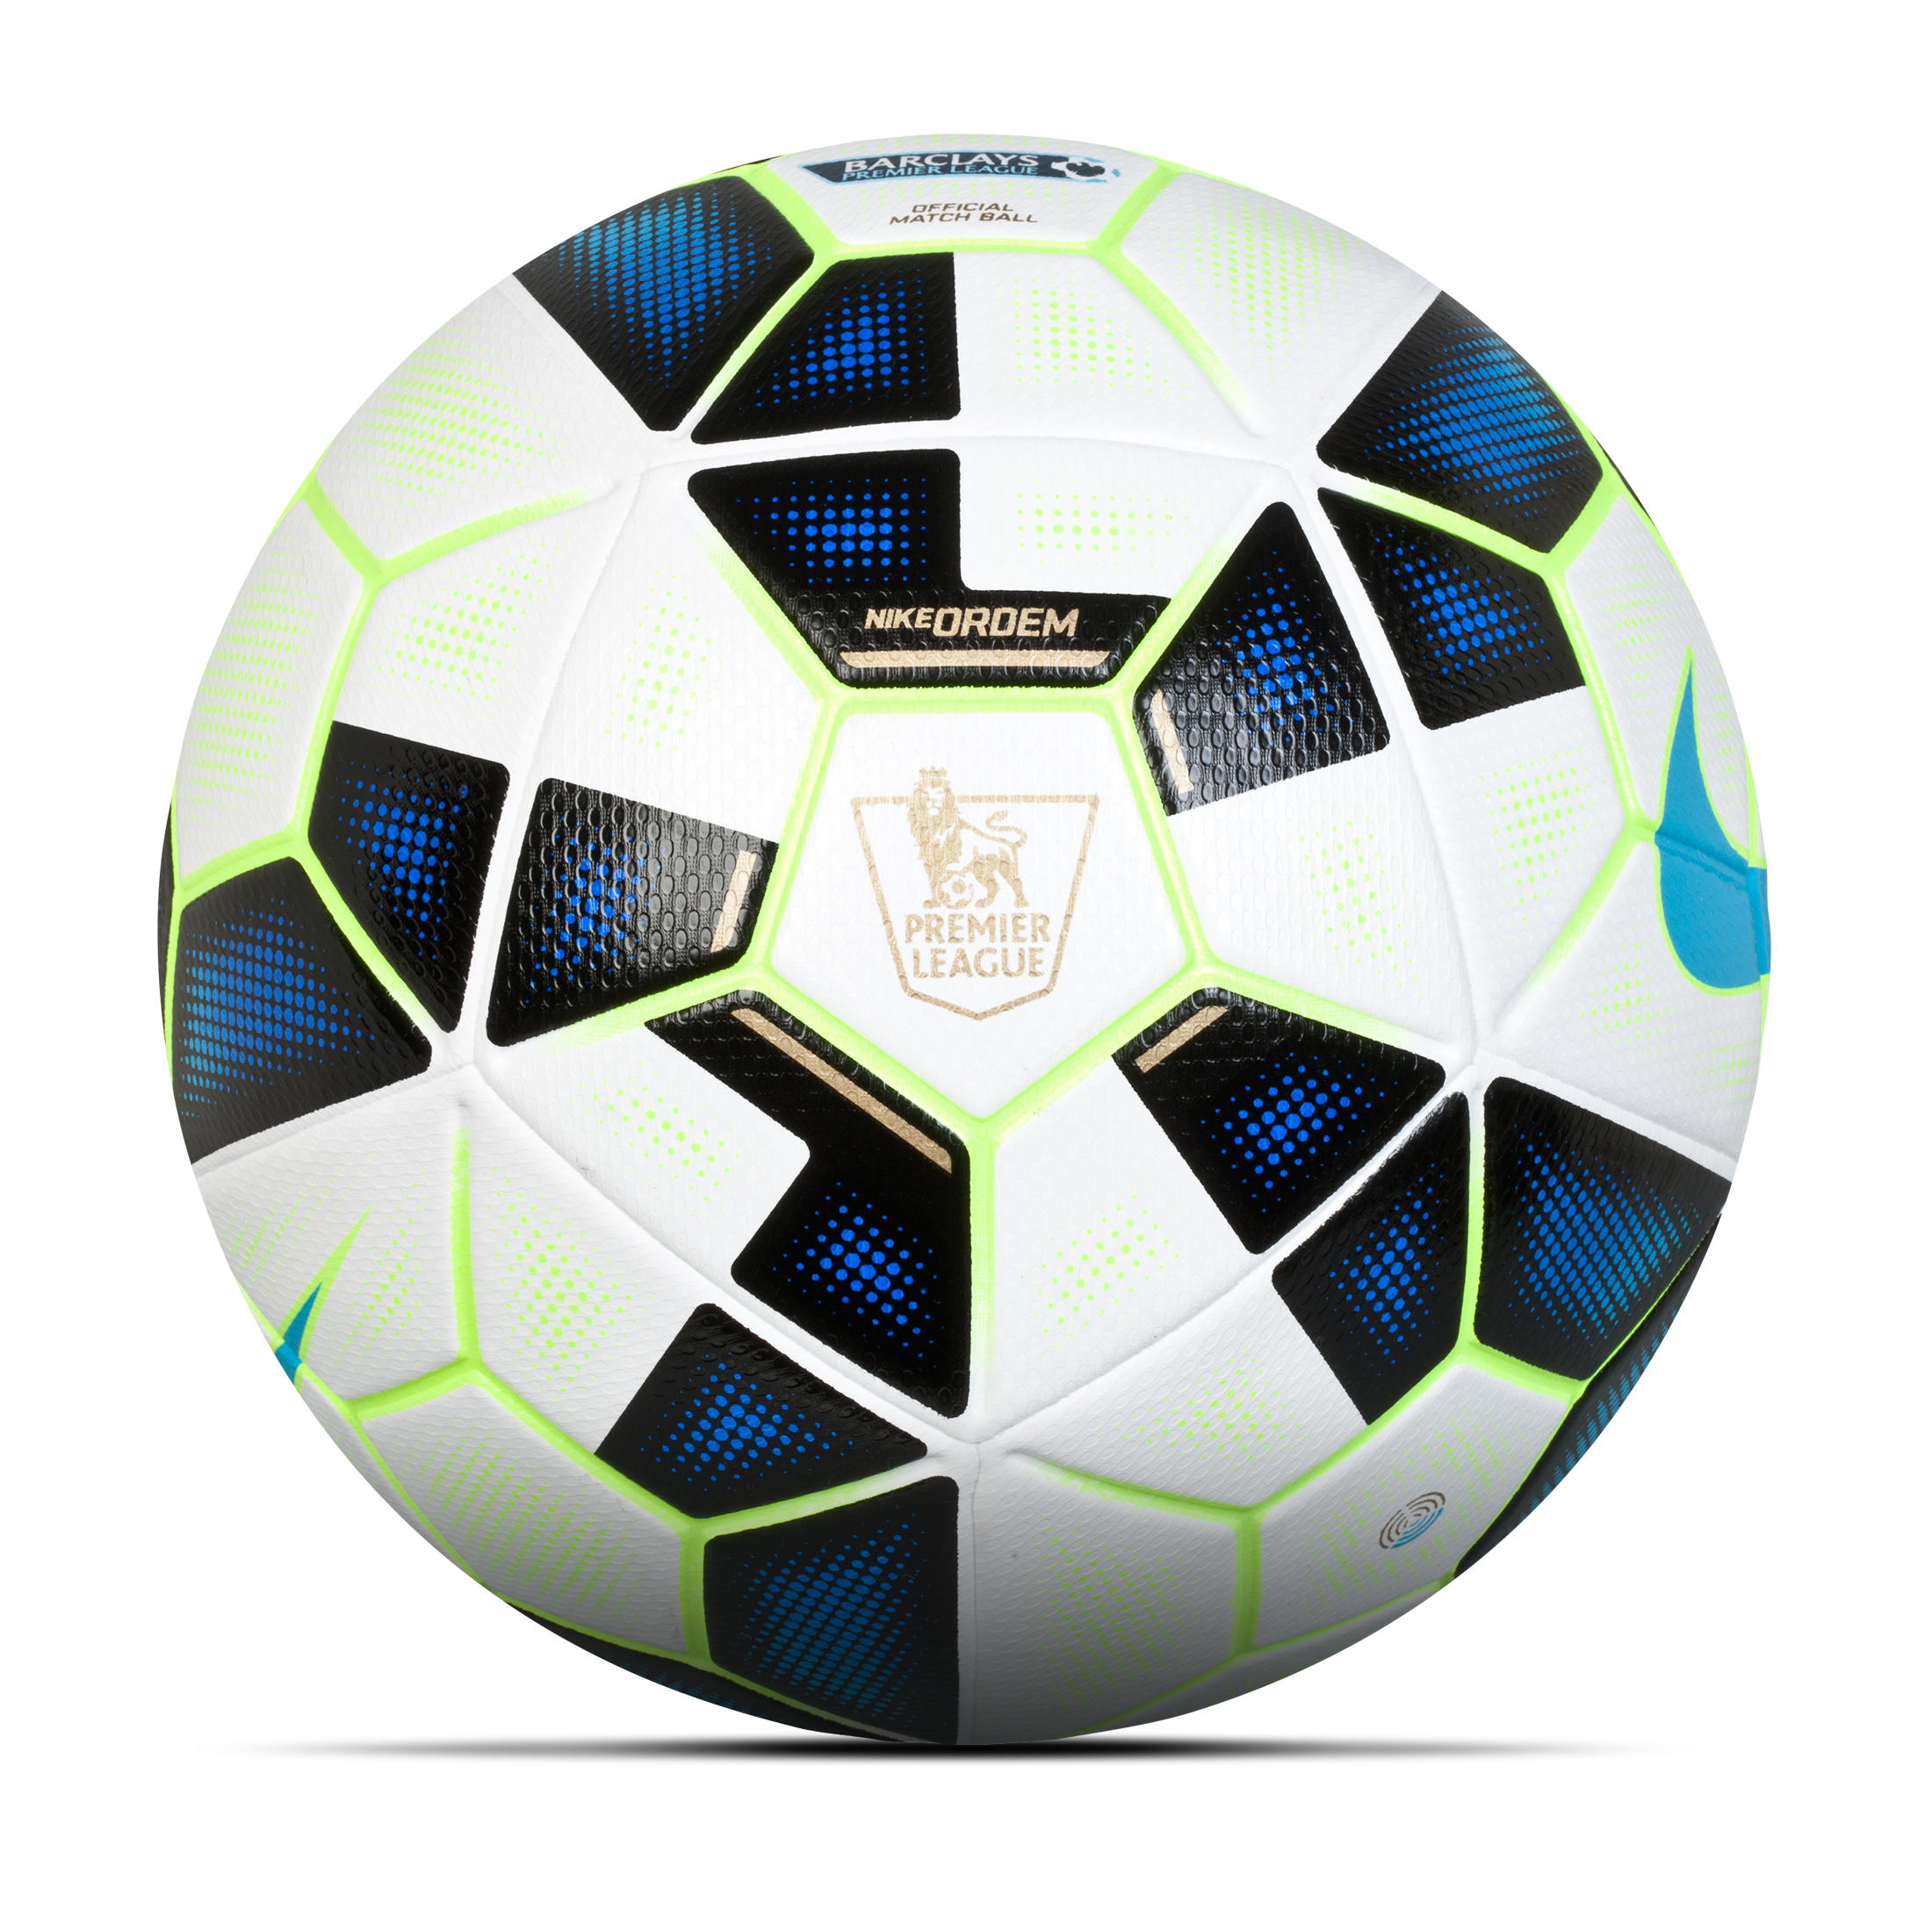 Nike Ordem 2 - Premier League Official Match Ball 14/15 White